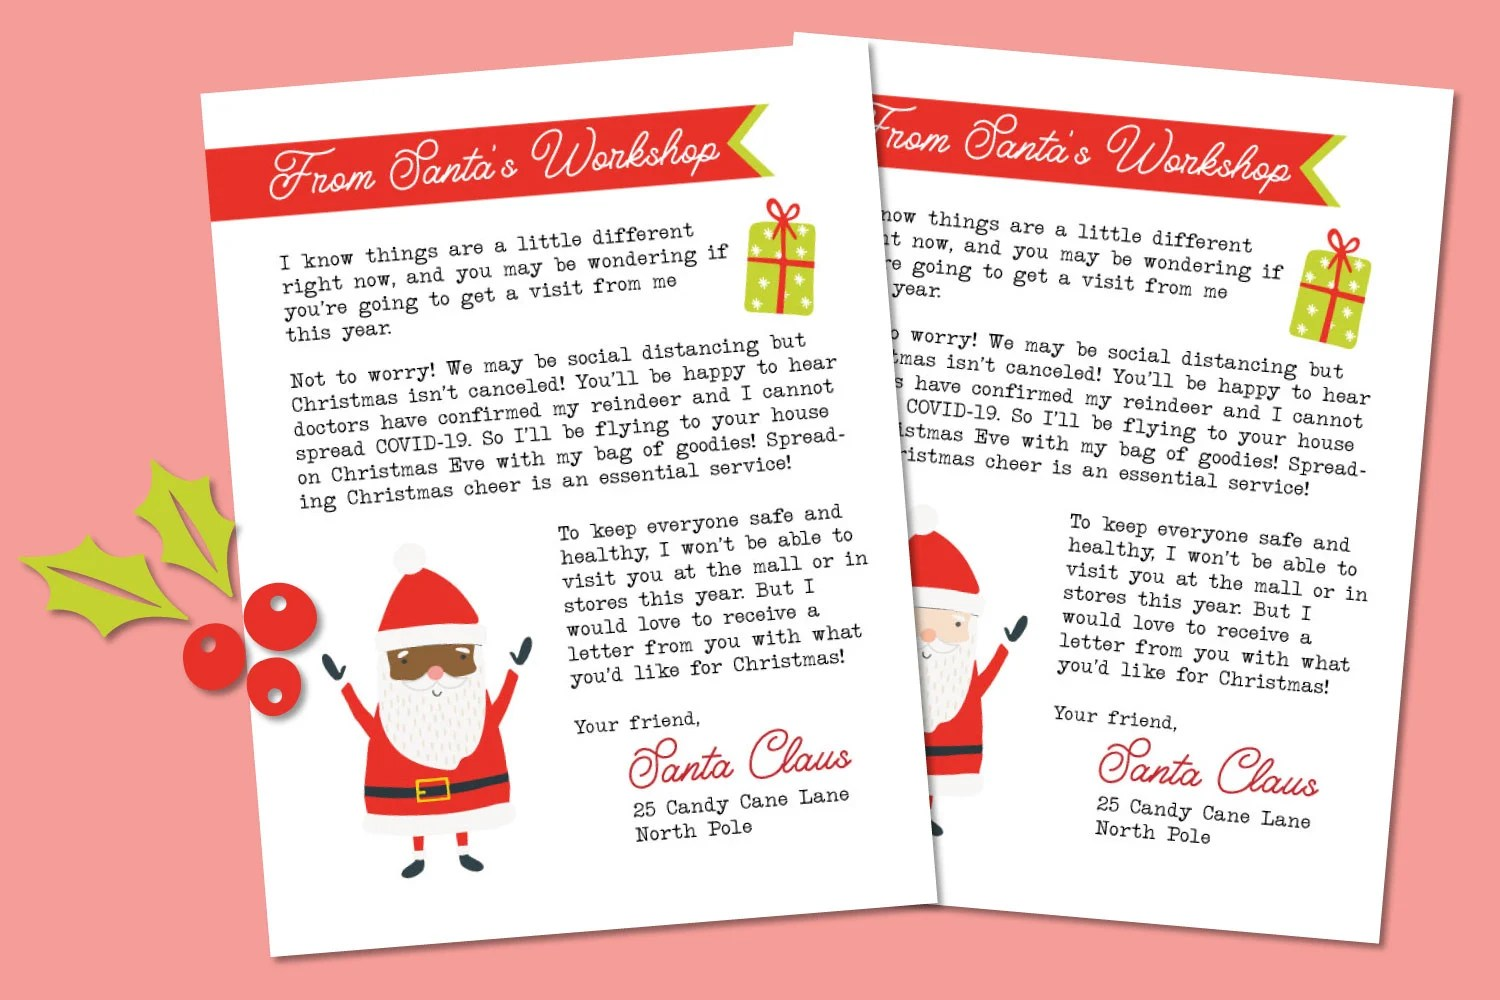 Letter from Santa on a pink background